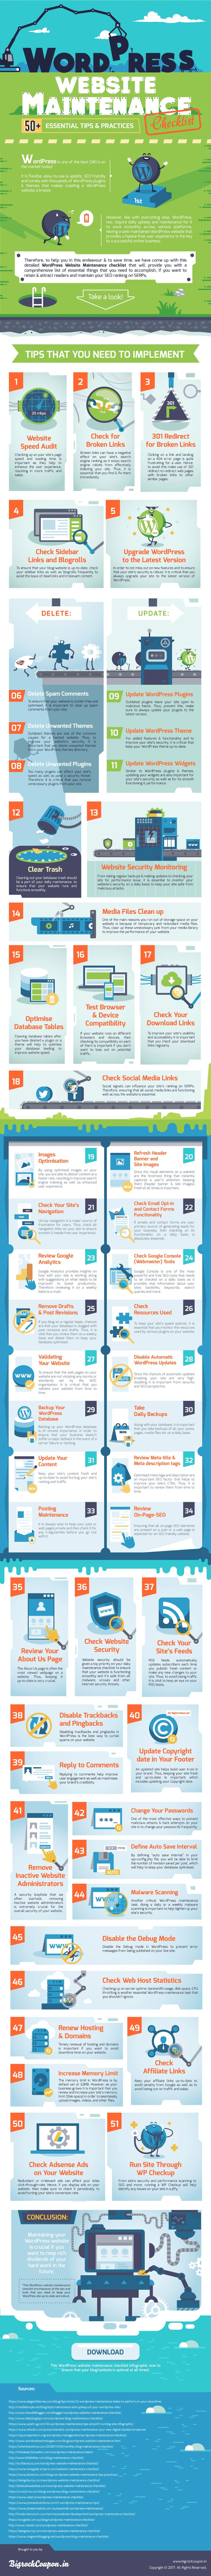 50+ Routine WordPress Website Maintenance Tasks To Improve Performance - #Infographic